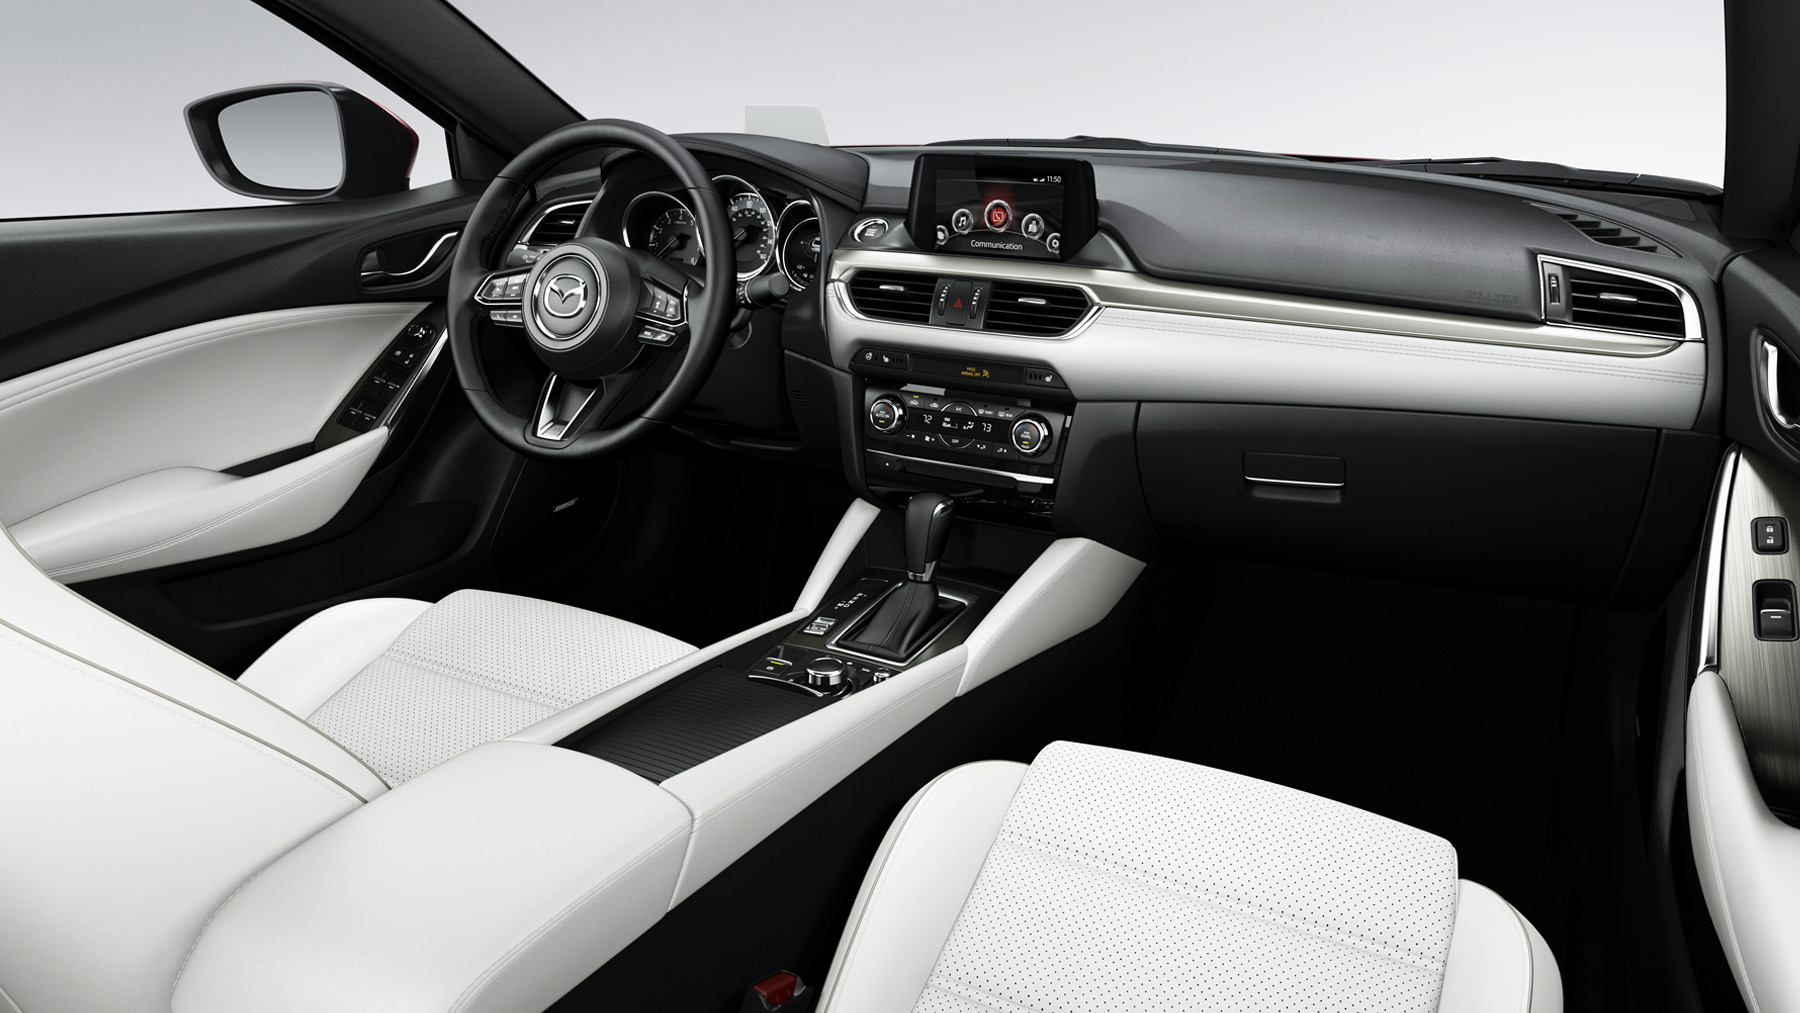 Bask in the Amazing Luxury of the Mazda6